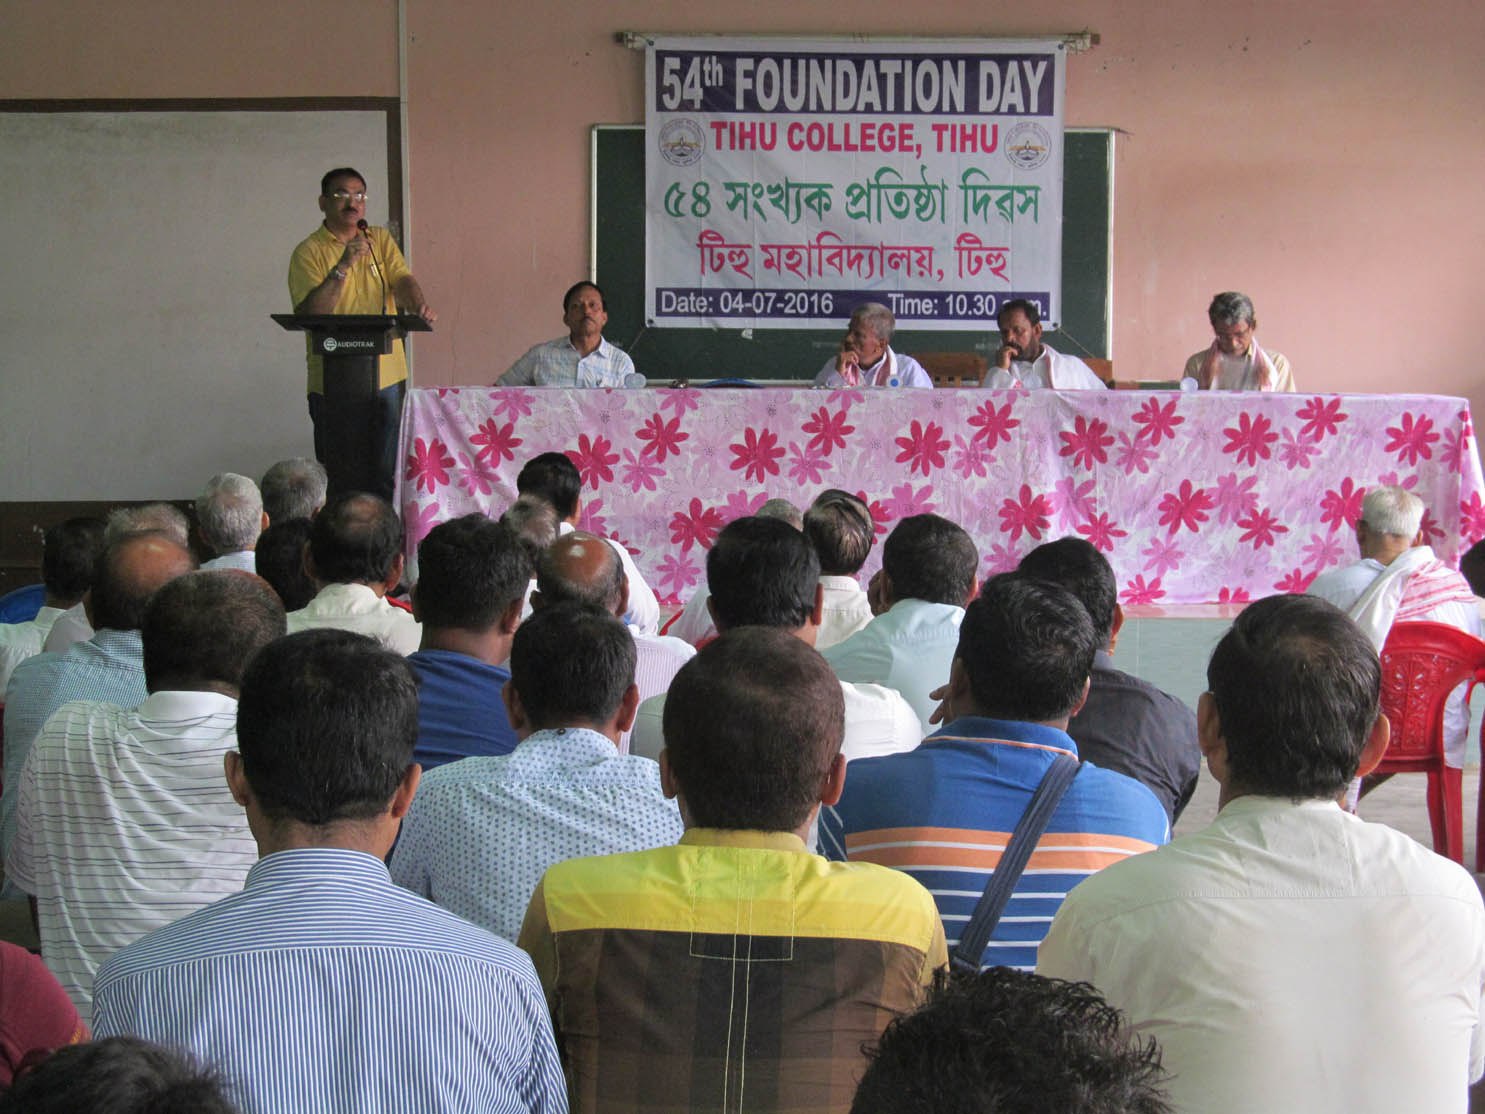 54th Foundation Day